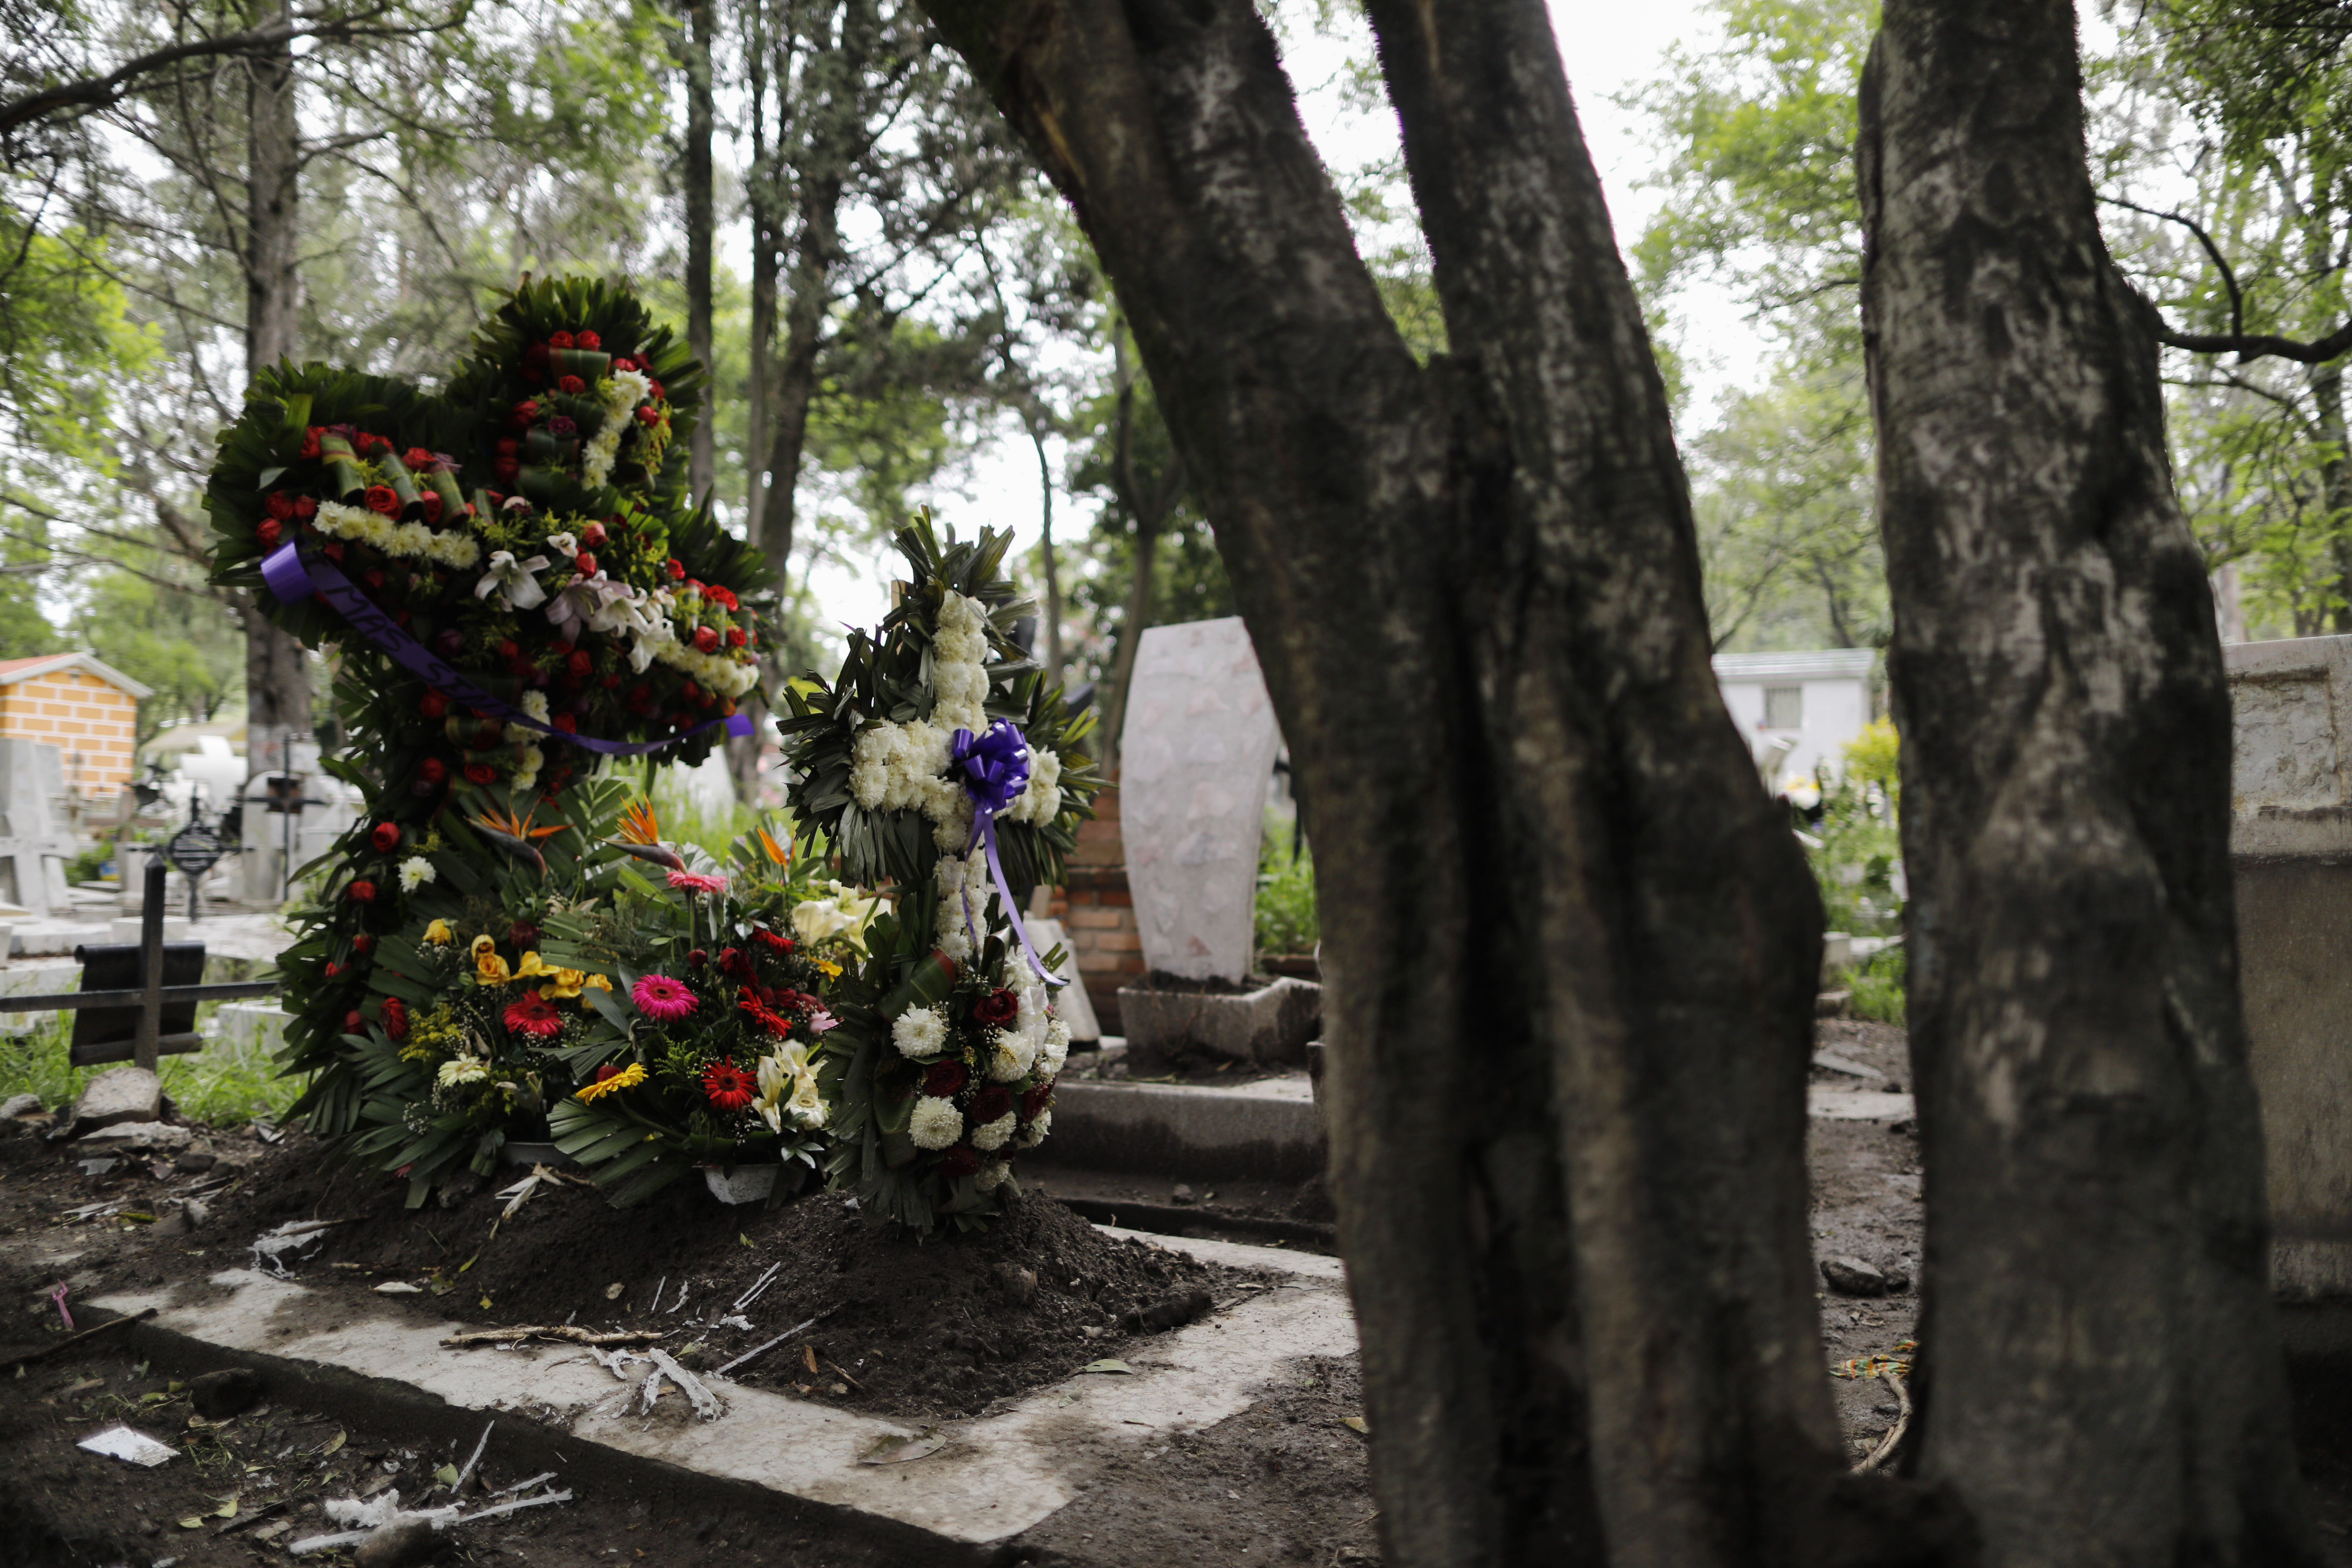 FILE - In this July 27, 2020 file photo, crosses of fresh flowers adorn a new grave at Xilotepec Cemetery amid the new coronavirus pandemic, in Xochimilco, Mexico City. From April 19 to June 30, the capital city saw over 17,800 more deaths than usual. (AP Photo/Rebecca Blackwell, File)